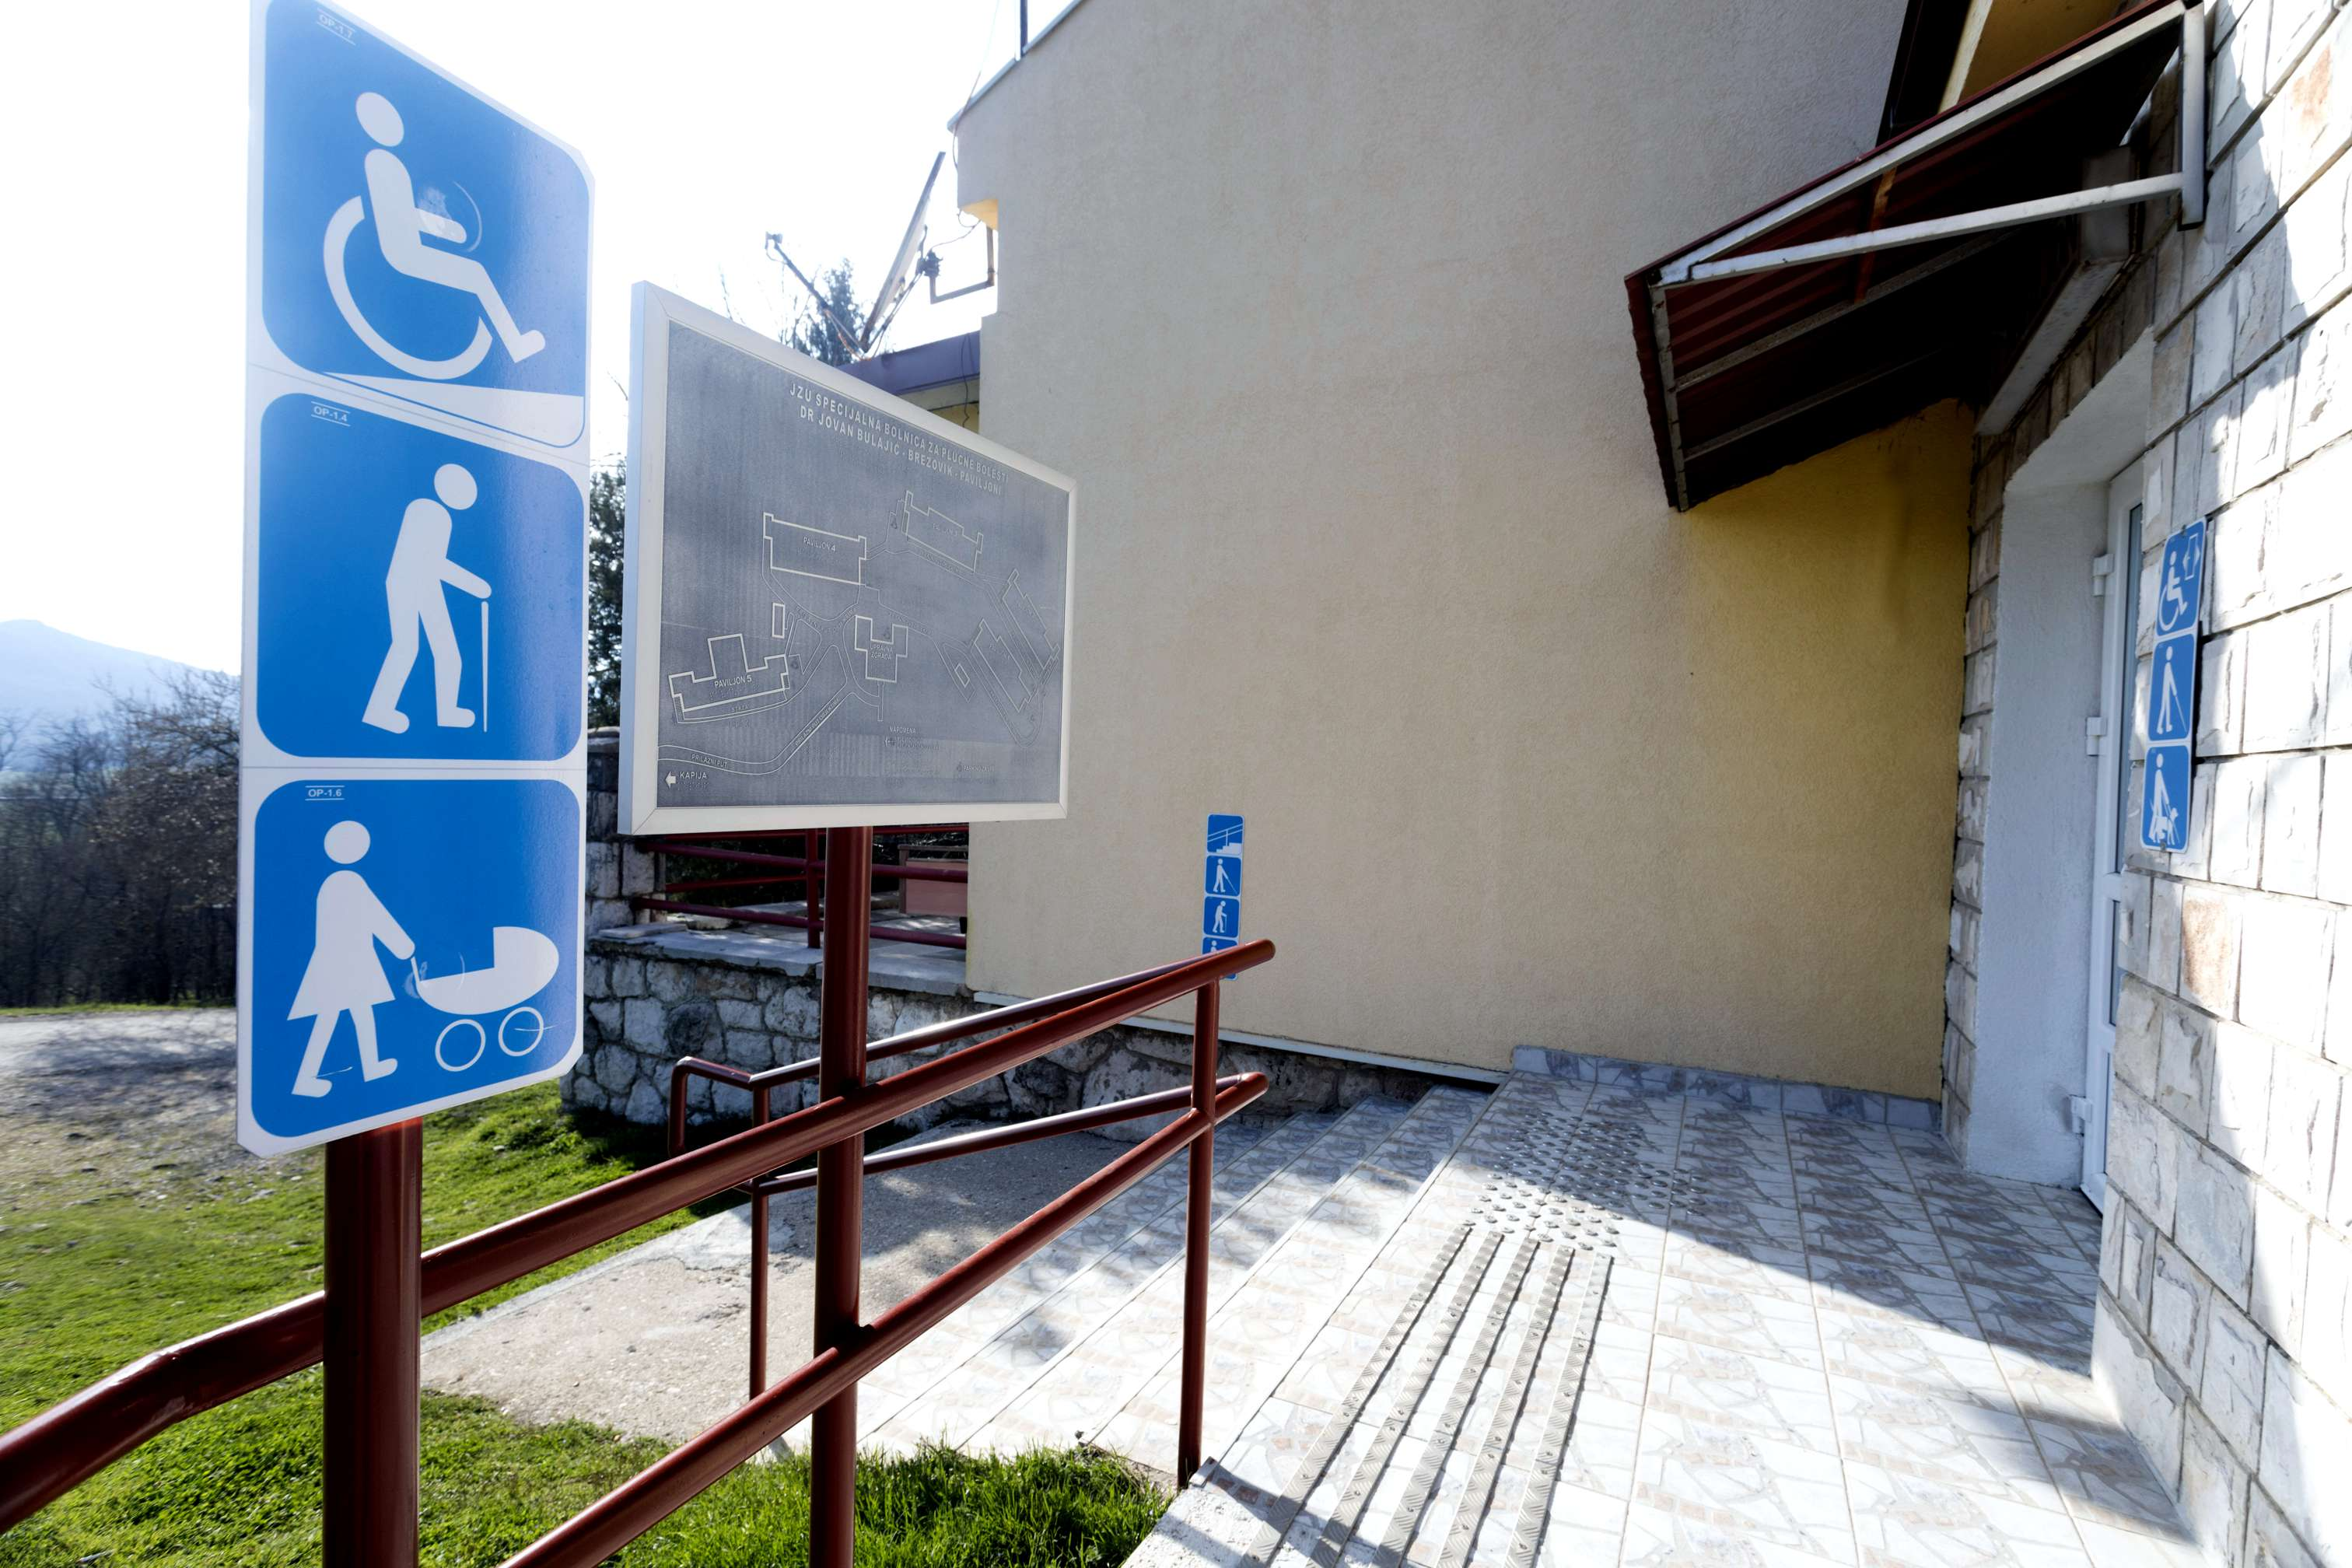 Accessibility signs spoljne